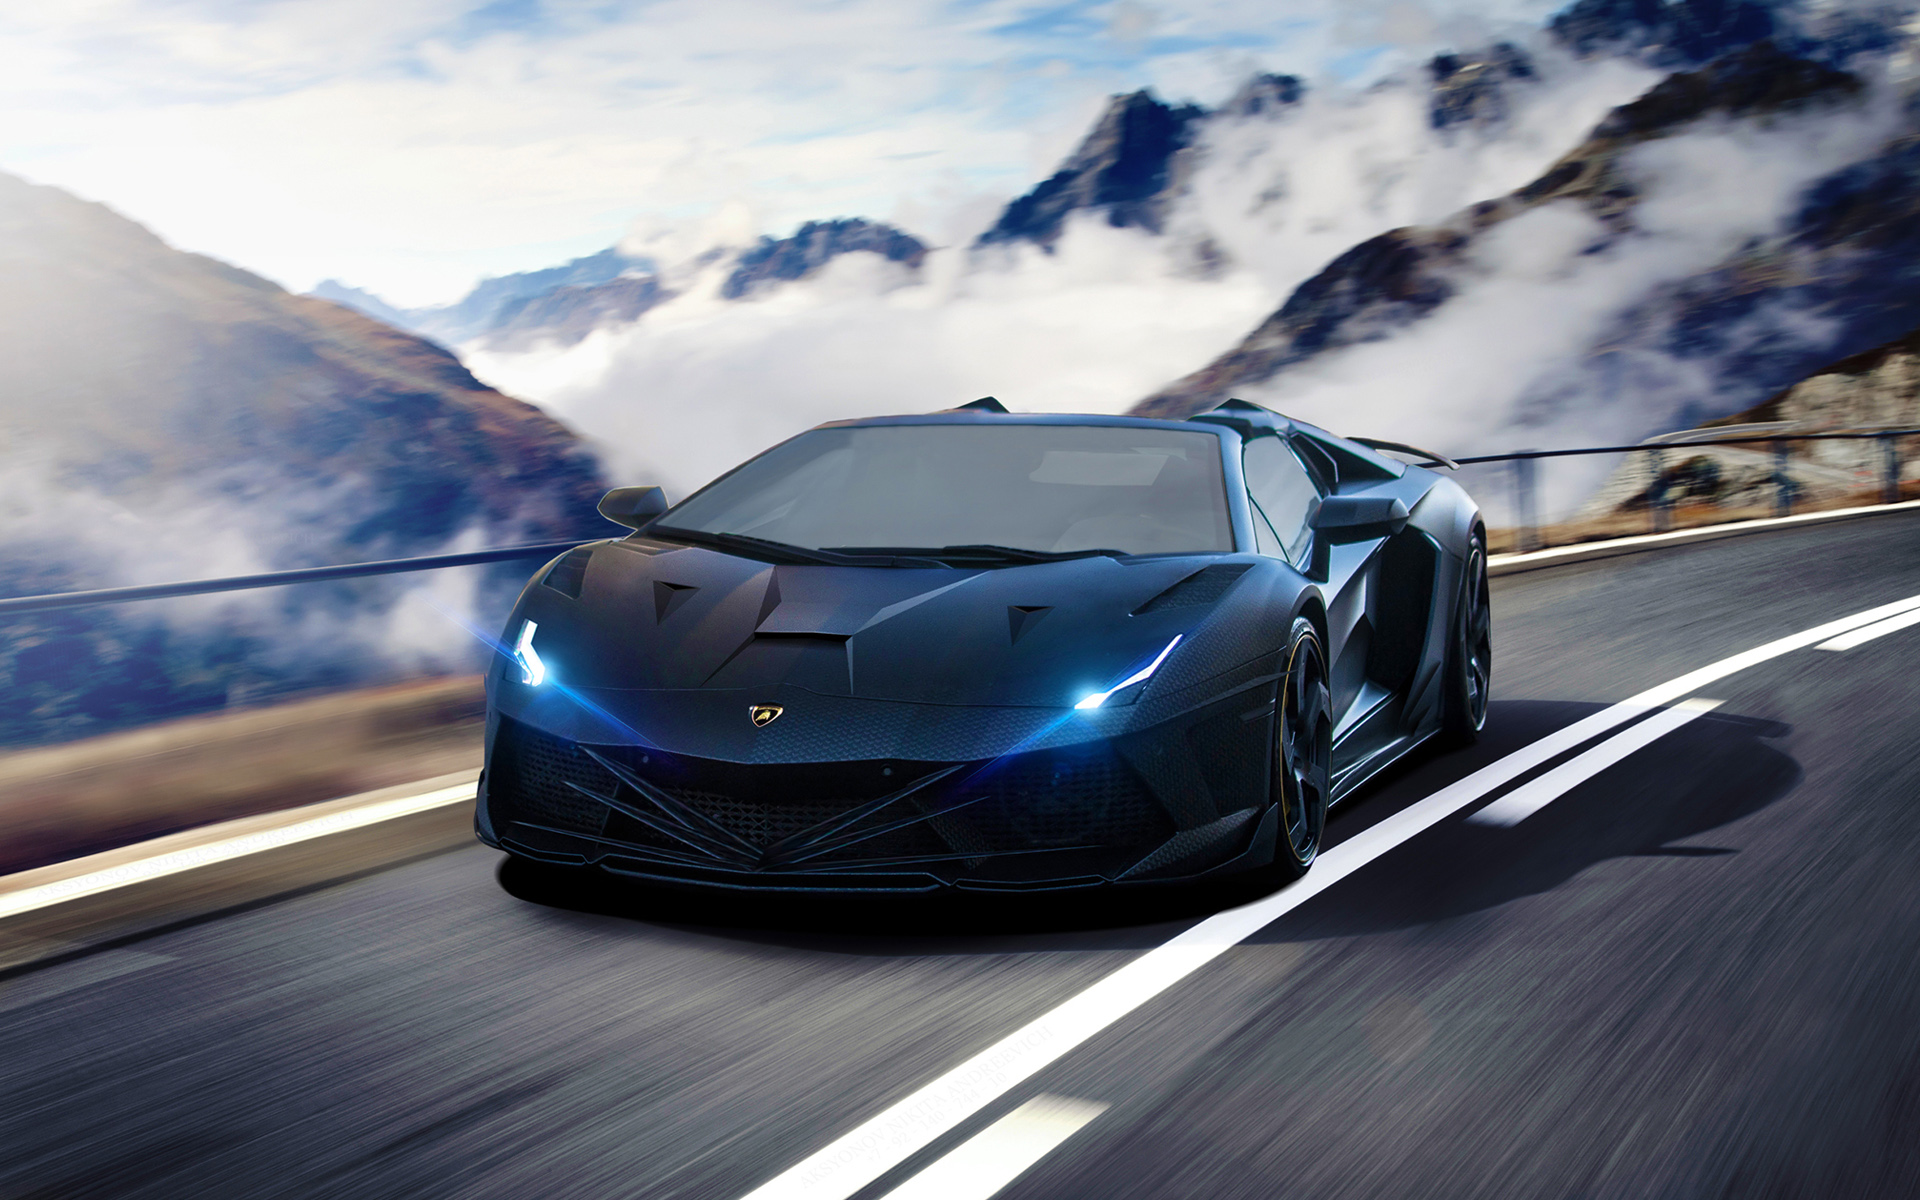 Supercar Hd Wallpaper: Lamborghini Aventador Supercar Wallpaper